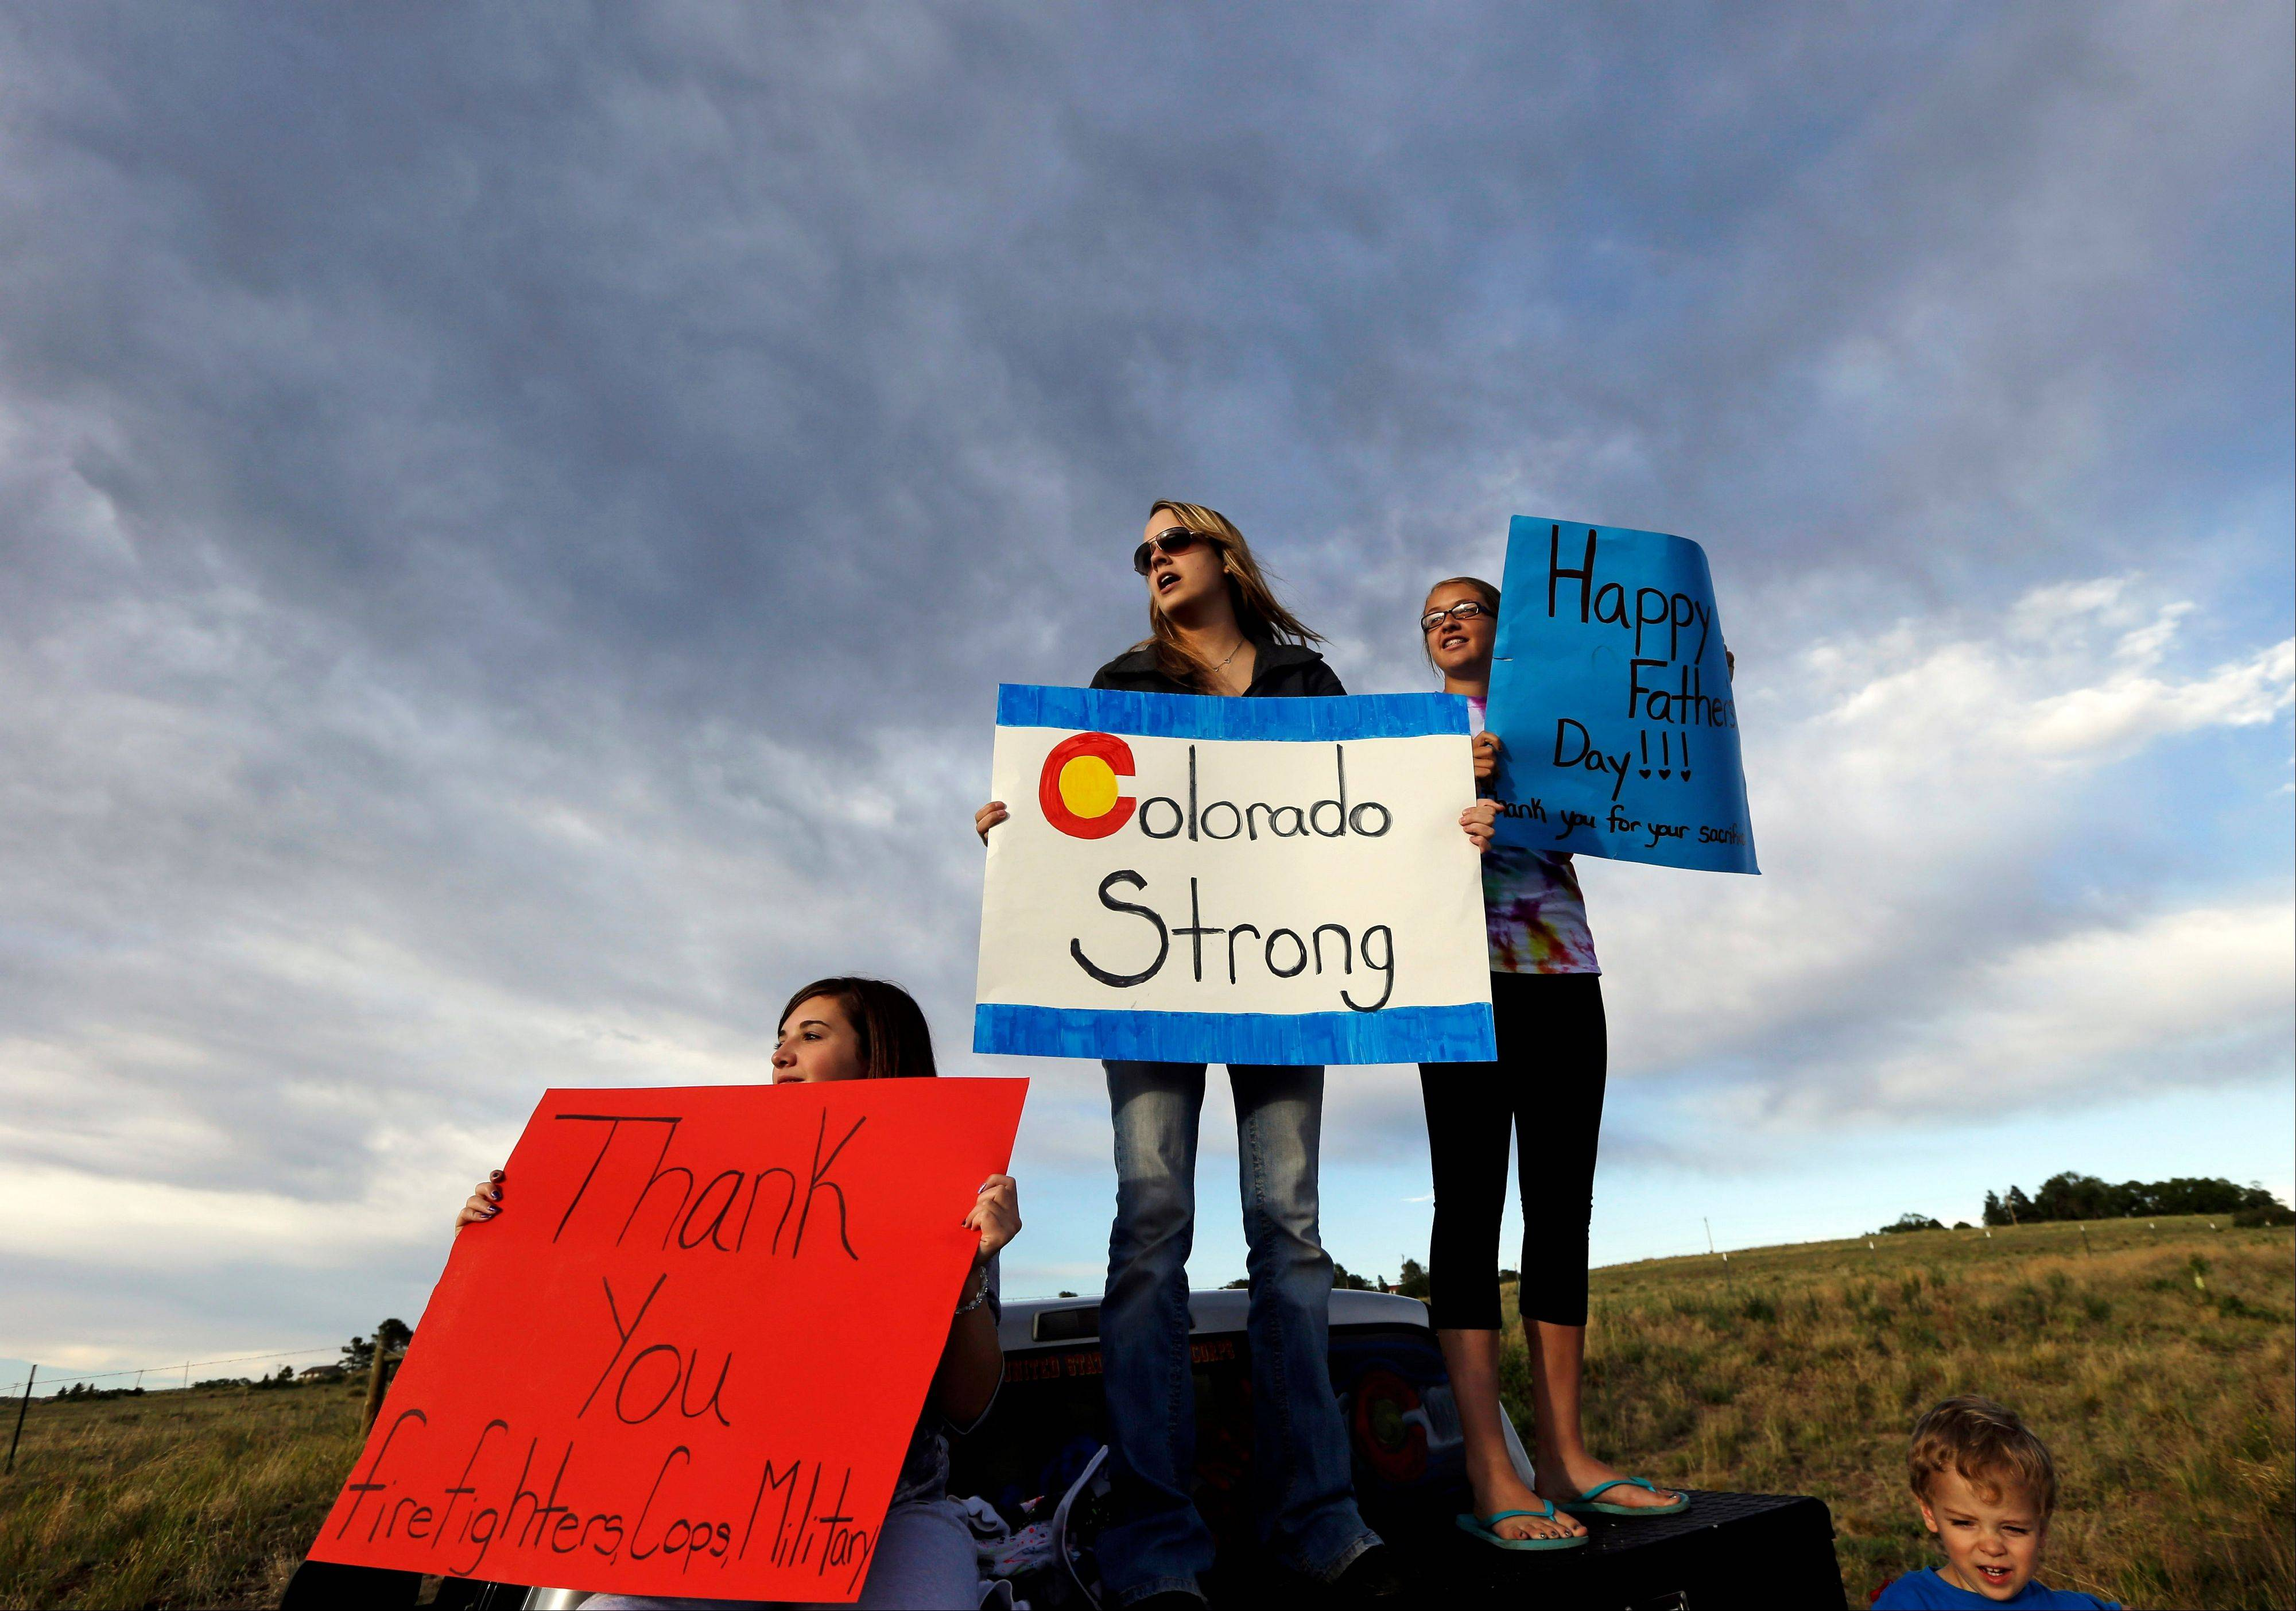 Black Forest resident Kristin Brown, left, who�s family lost their home in the wildfire, is joined by Ashley Clipp, Kaitlyn Barlow and Ashley�s son Jackson, 2, as they support first responders outside of a fire camp in Colorado Springs, Colo., Sunday.